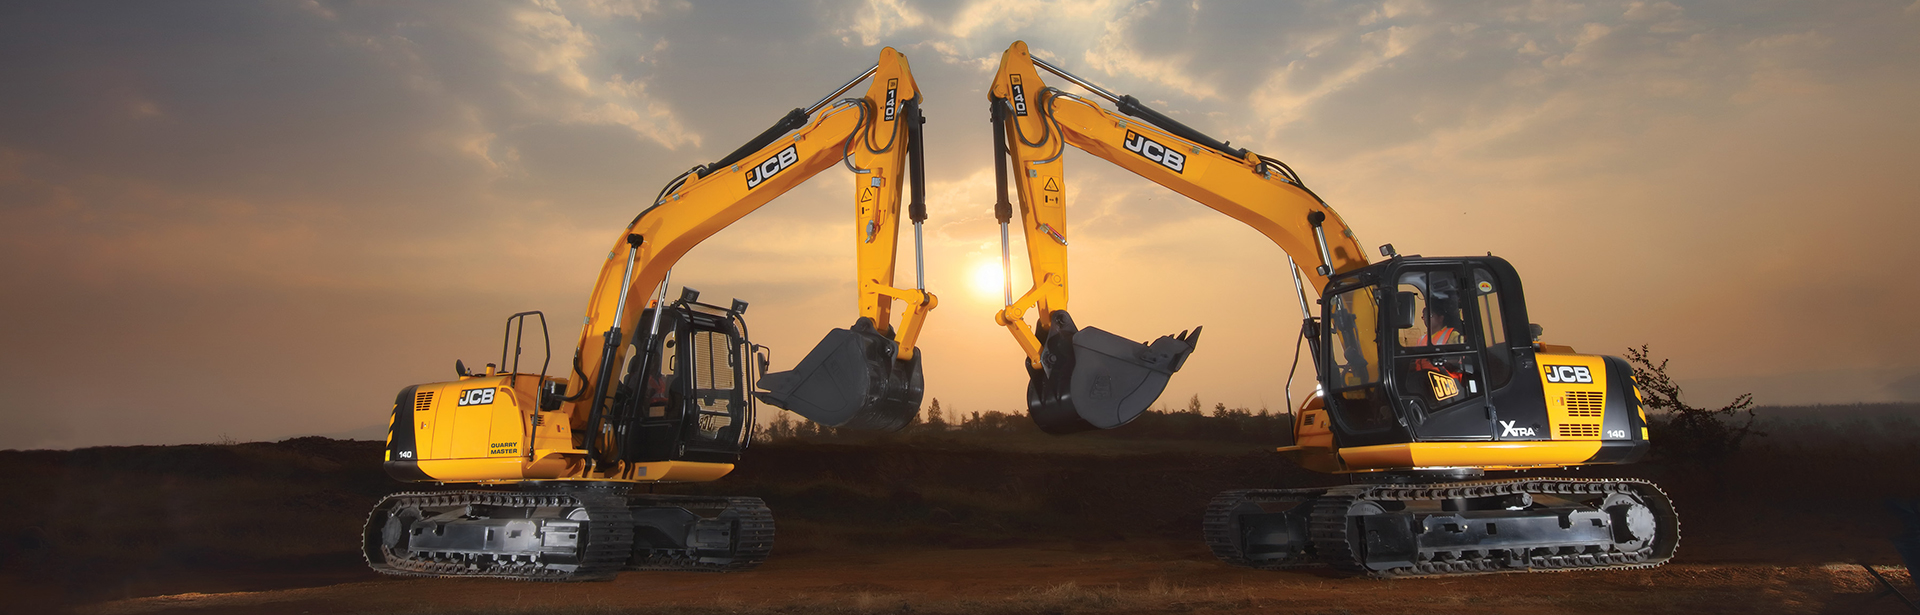 Excavator Offer Indore